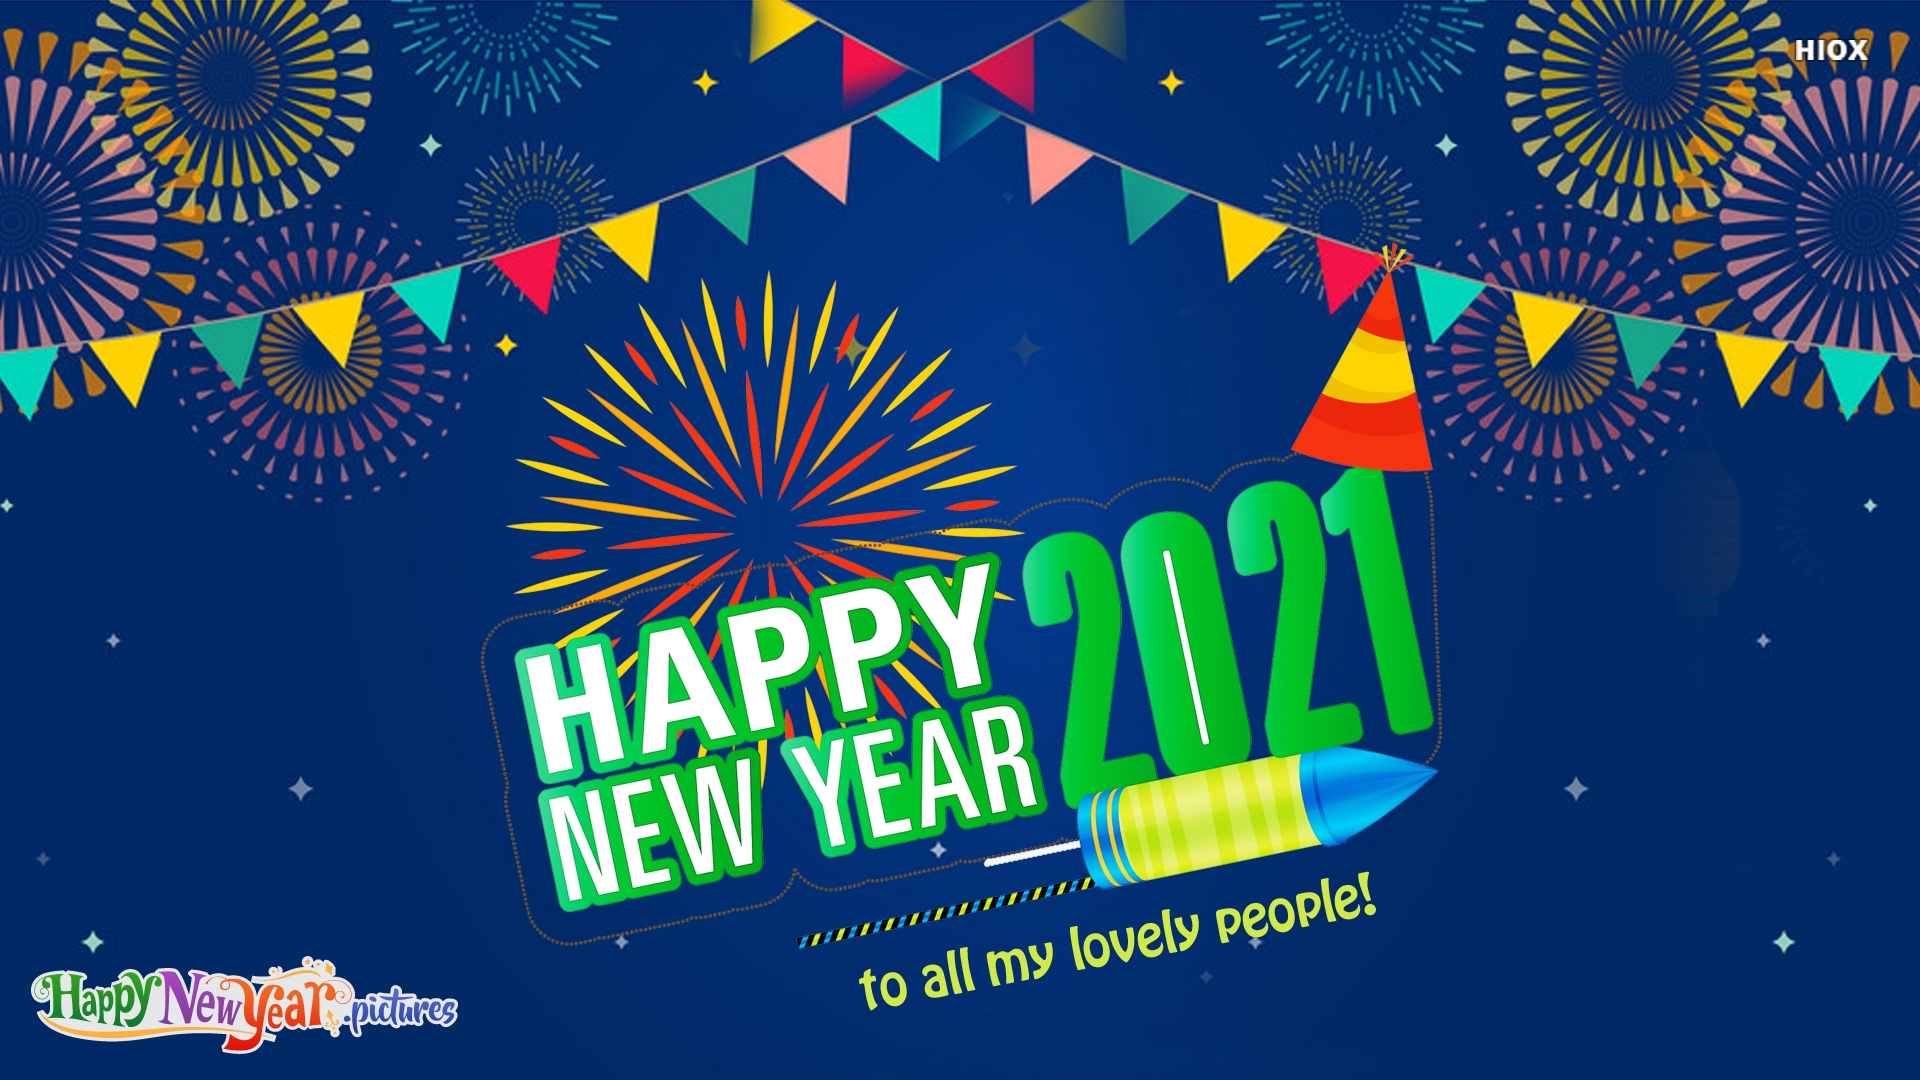 Happy New Year To All My Lovely People!